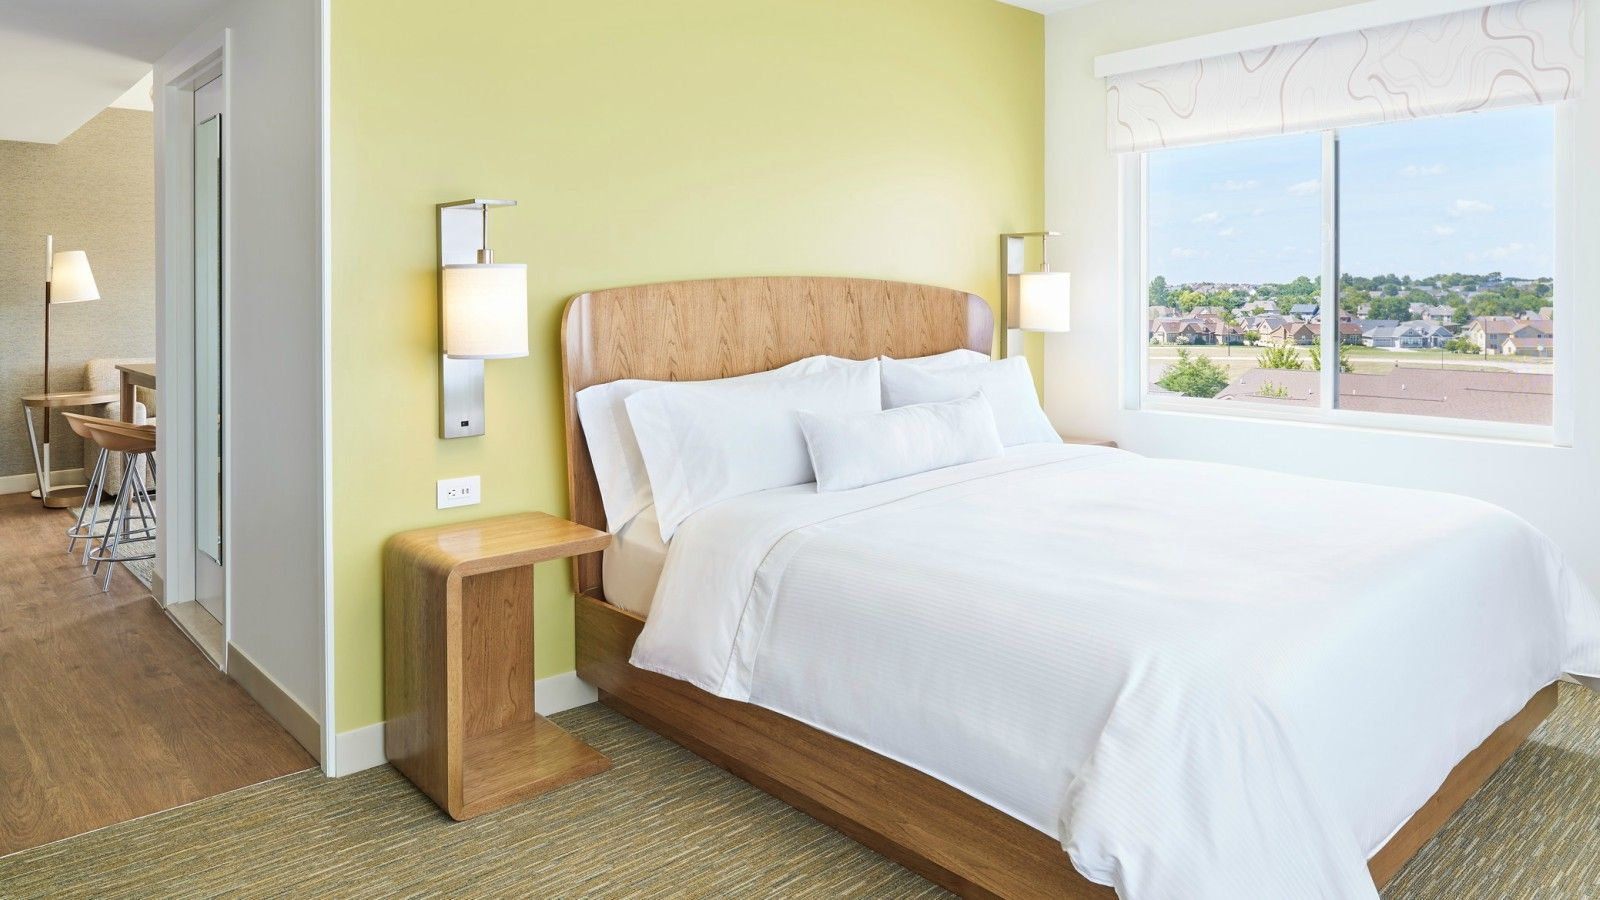 Des Moines Meetings - Guest Room